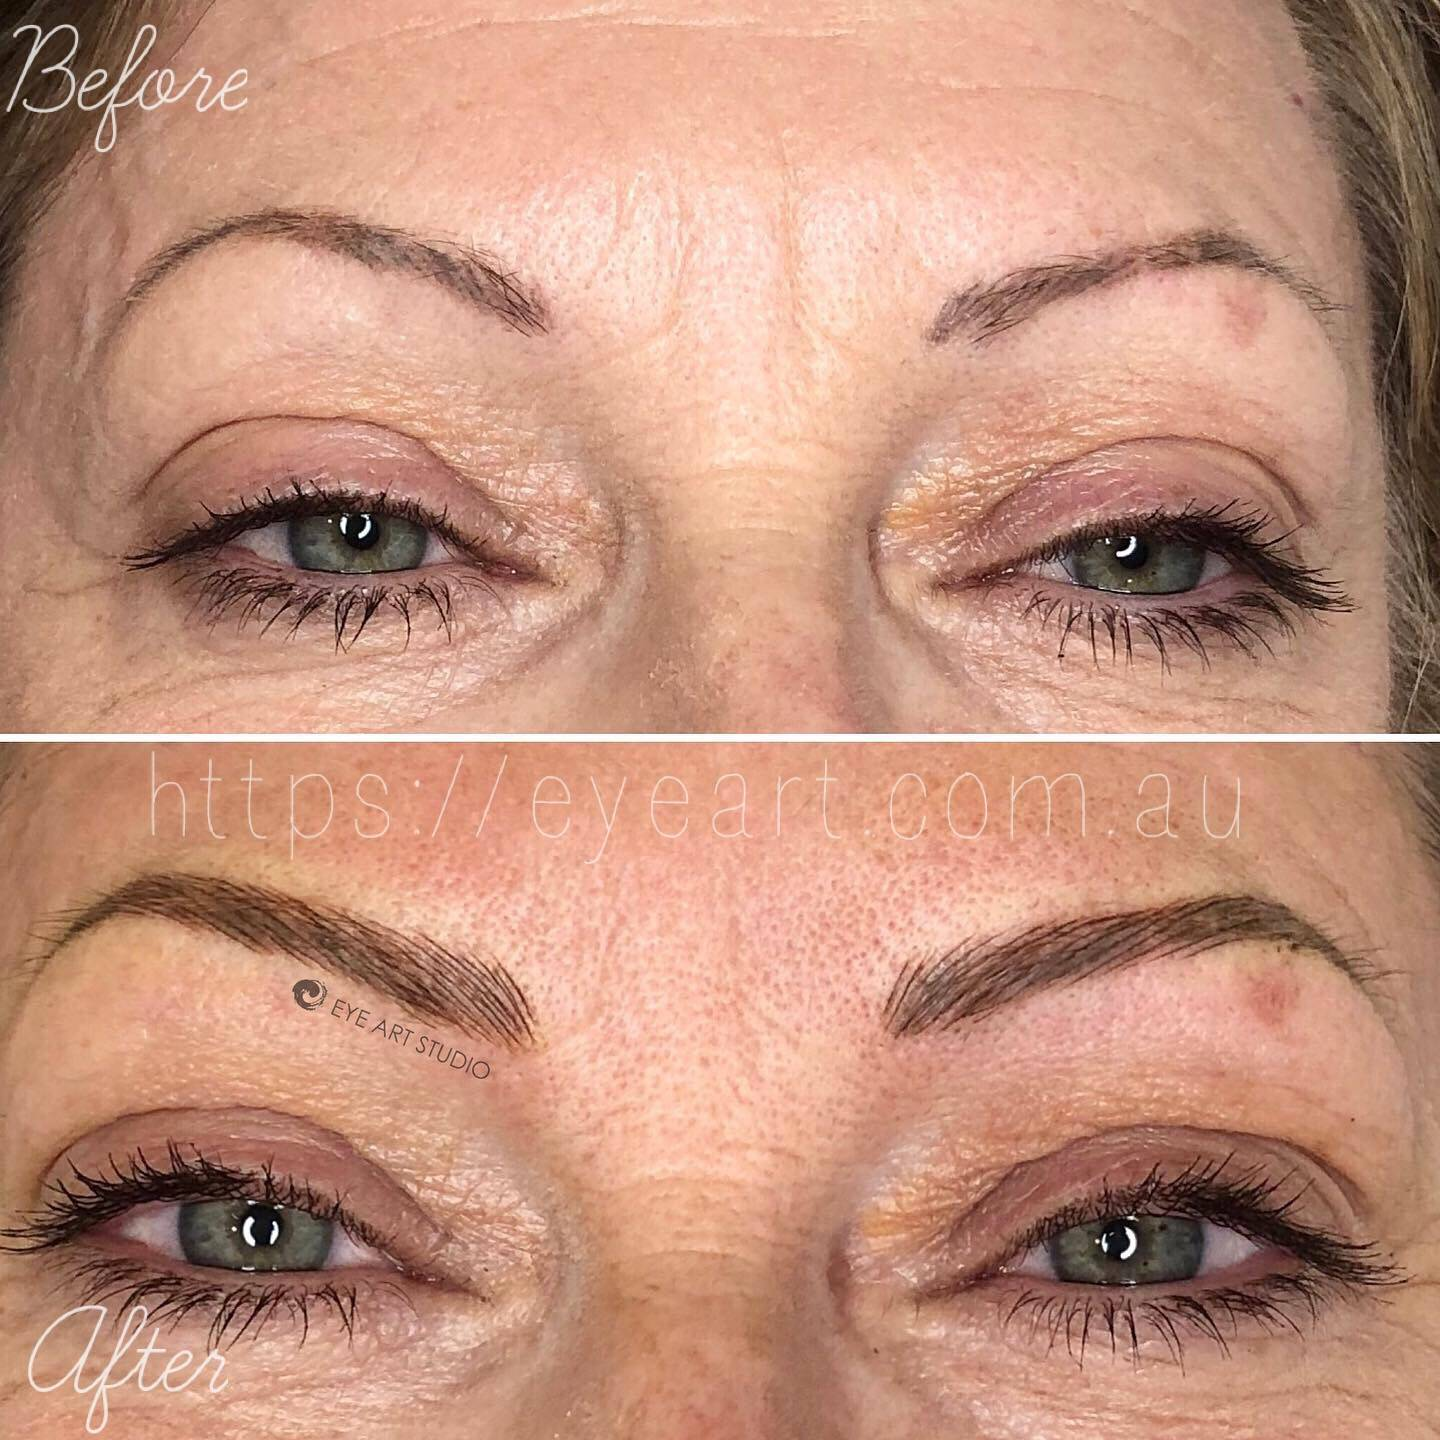 Eyebrow Tattoo Repair